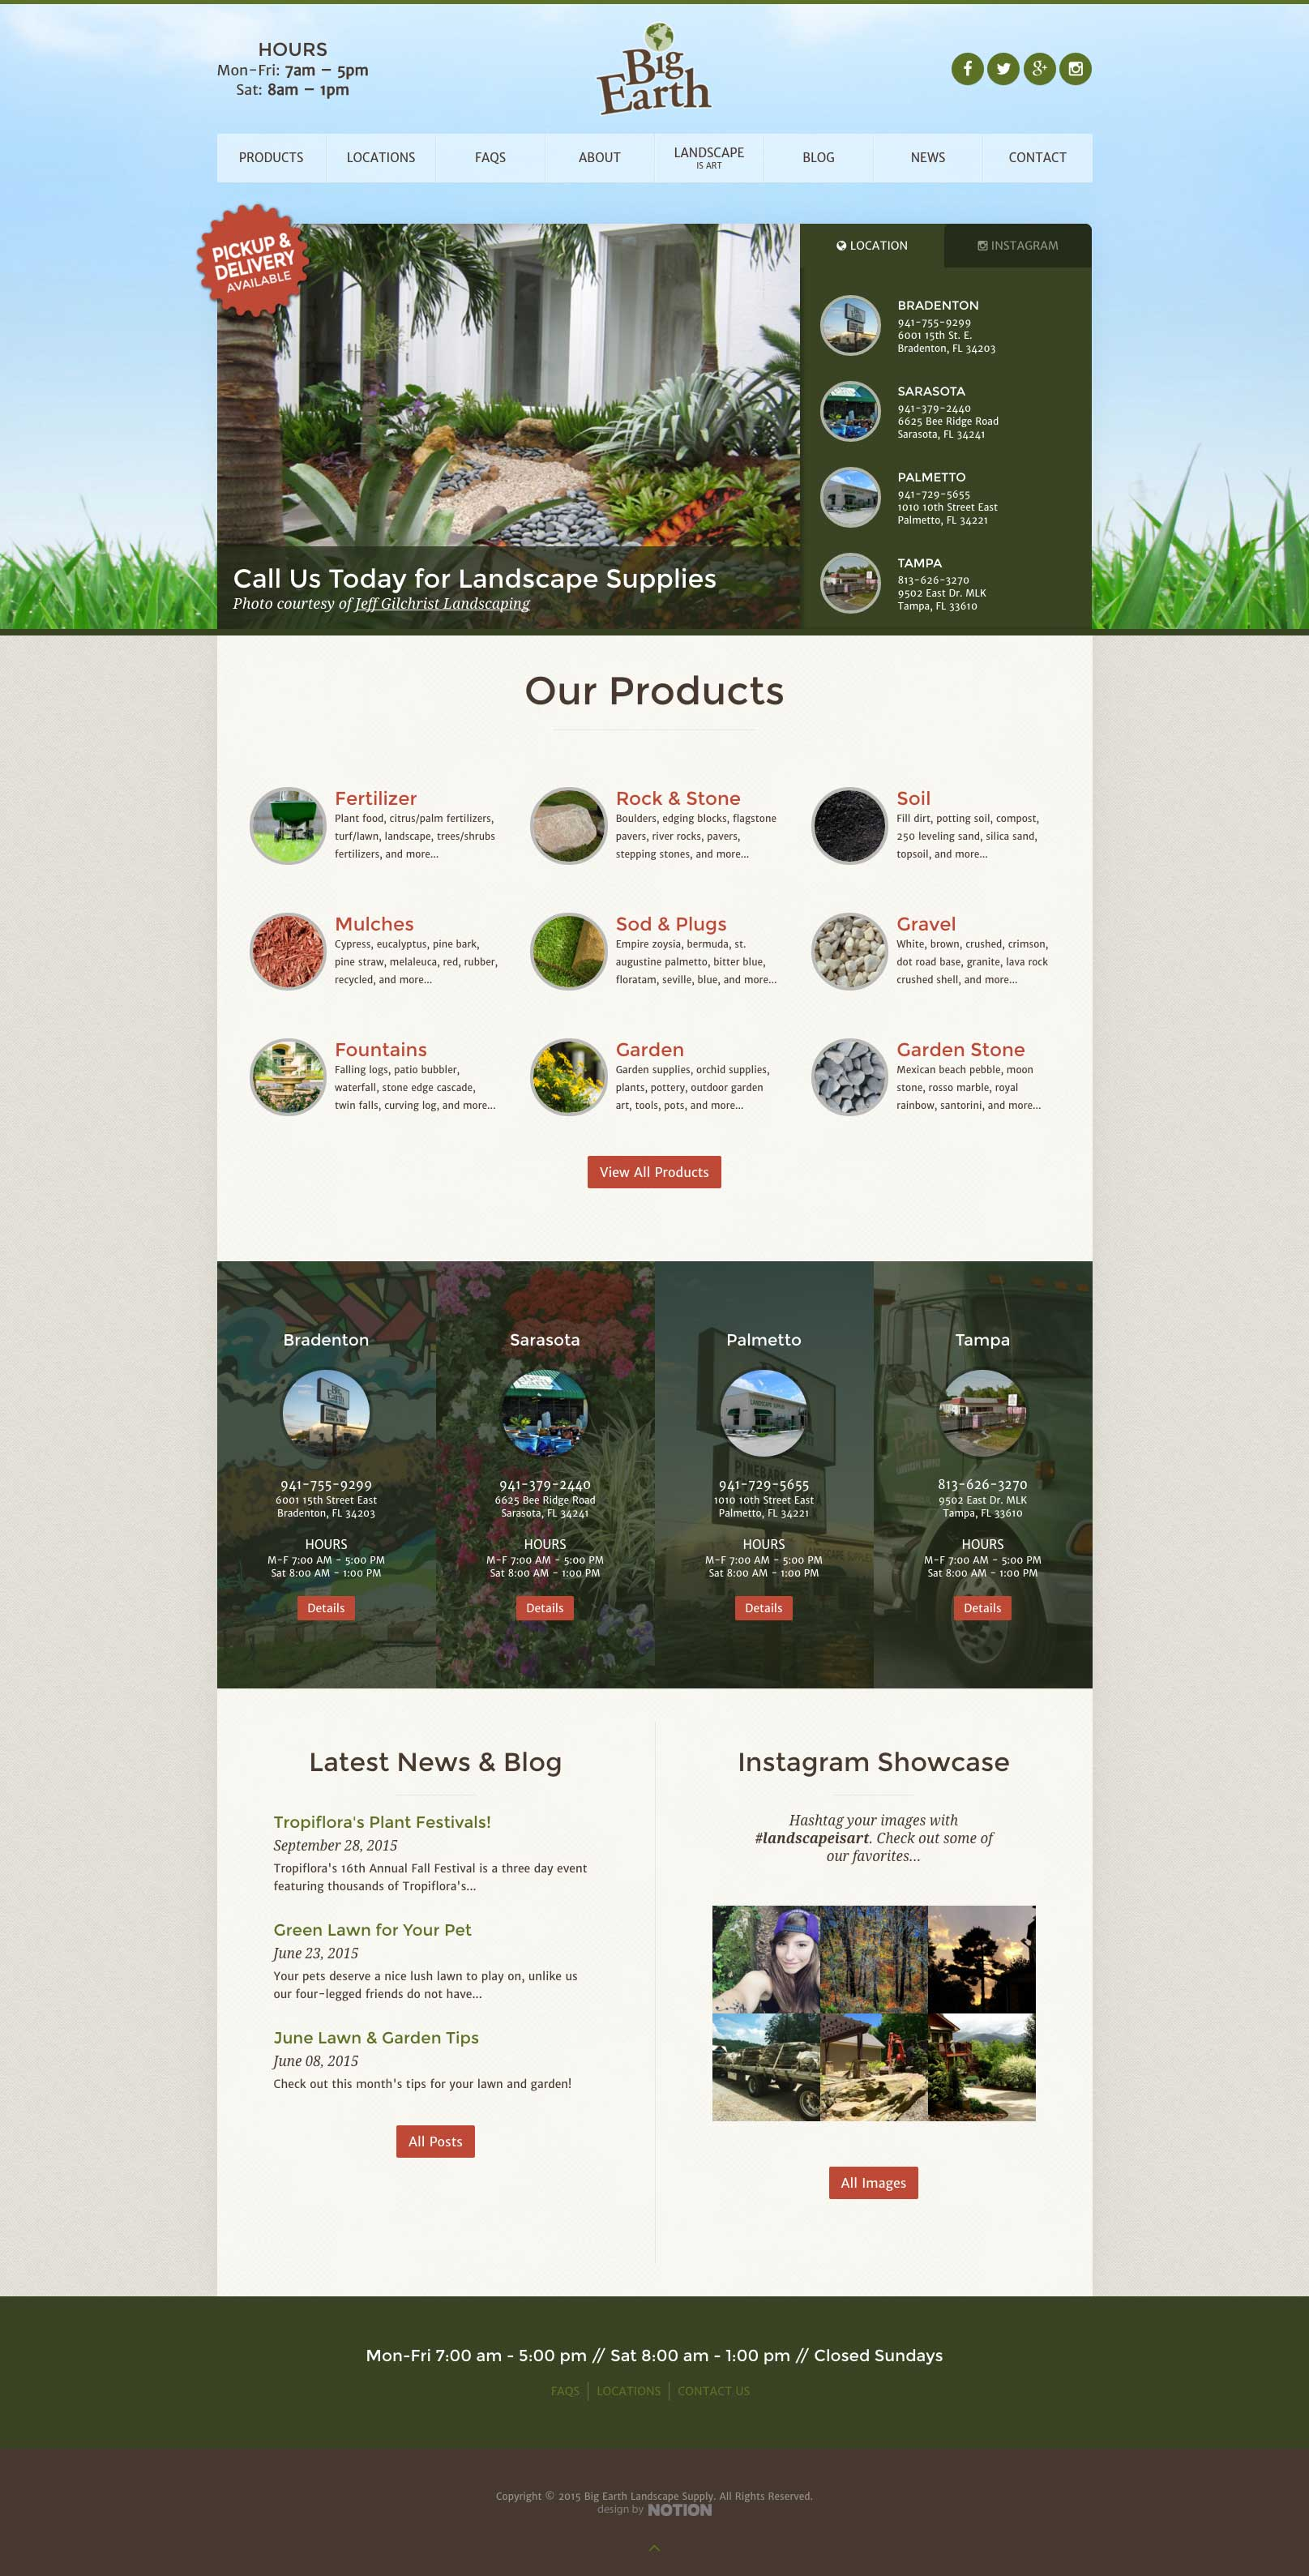 Big Earth Website Design And Maintenance By Notion Design Group